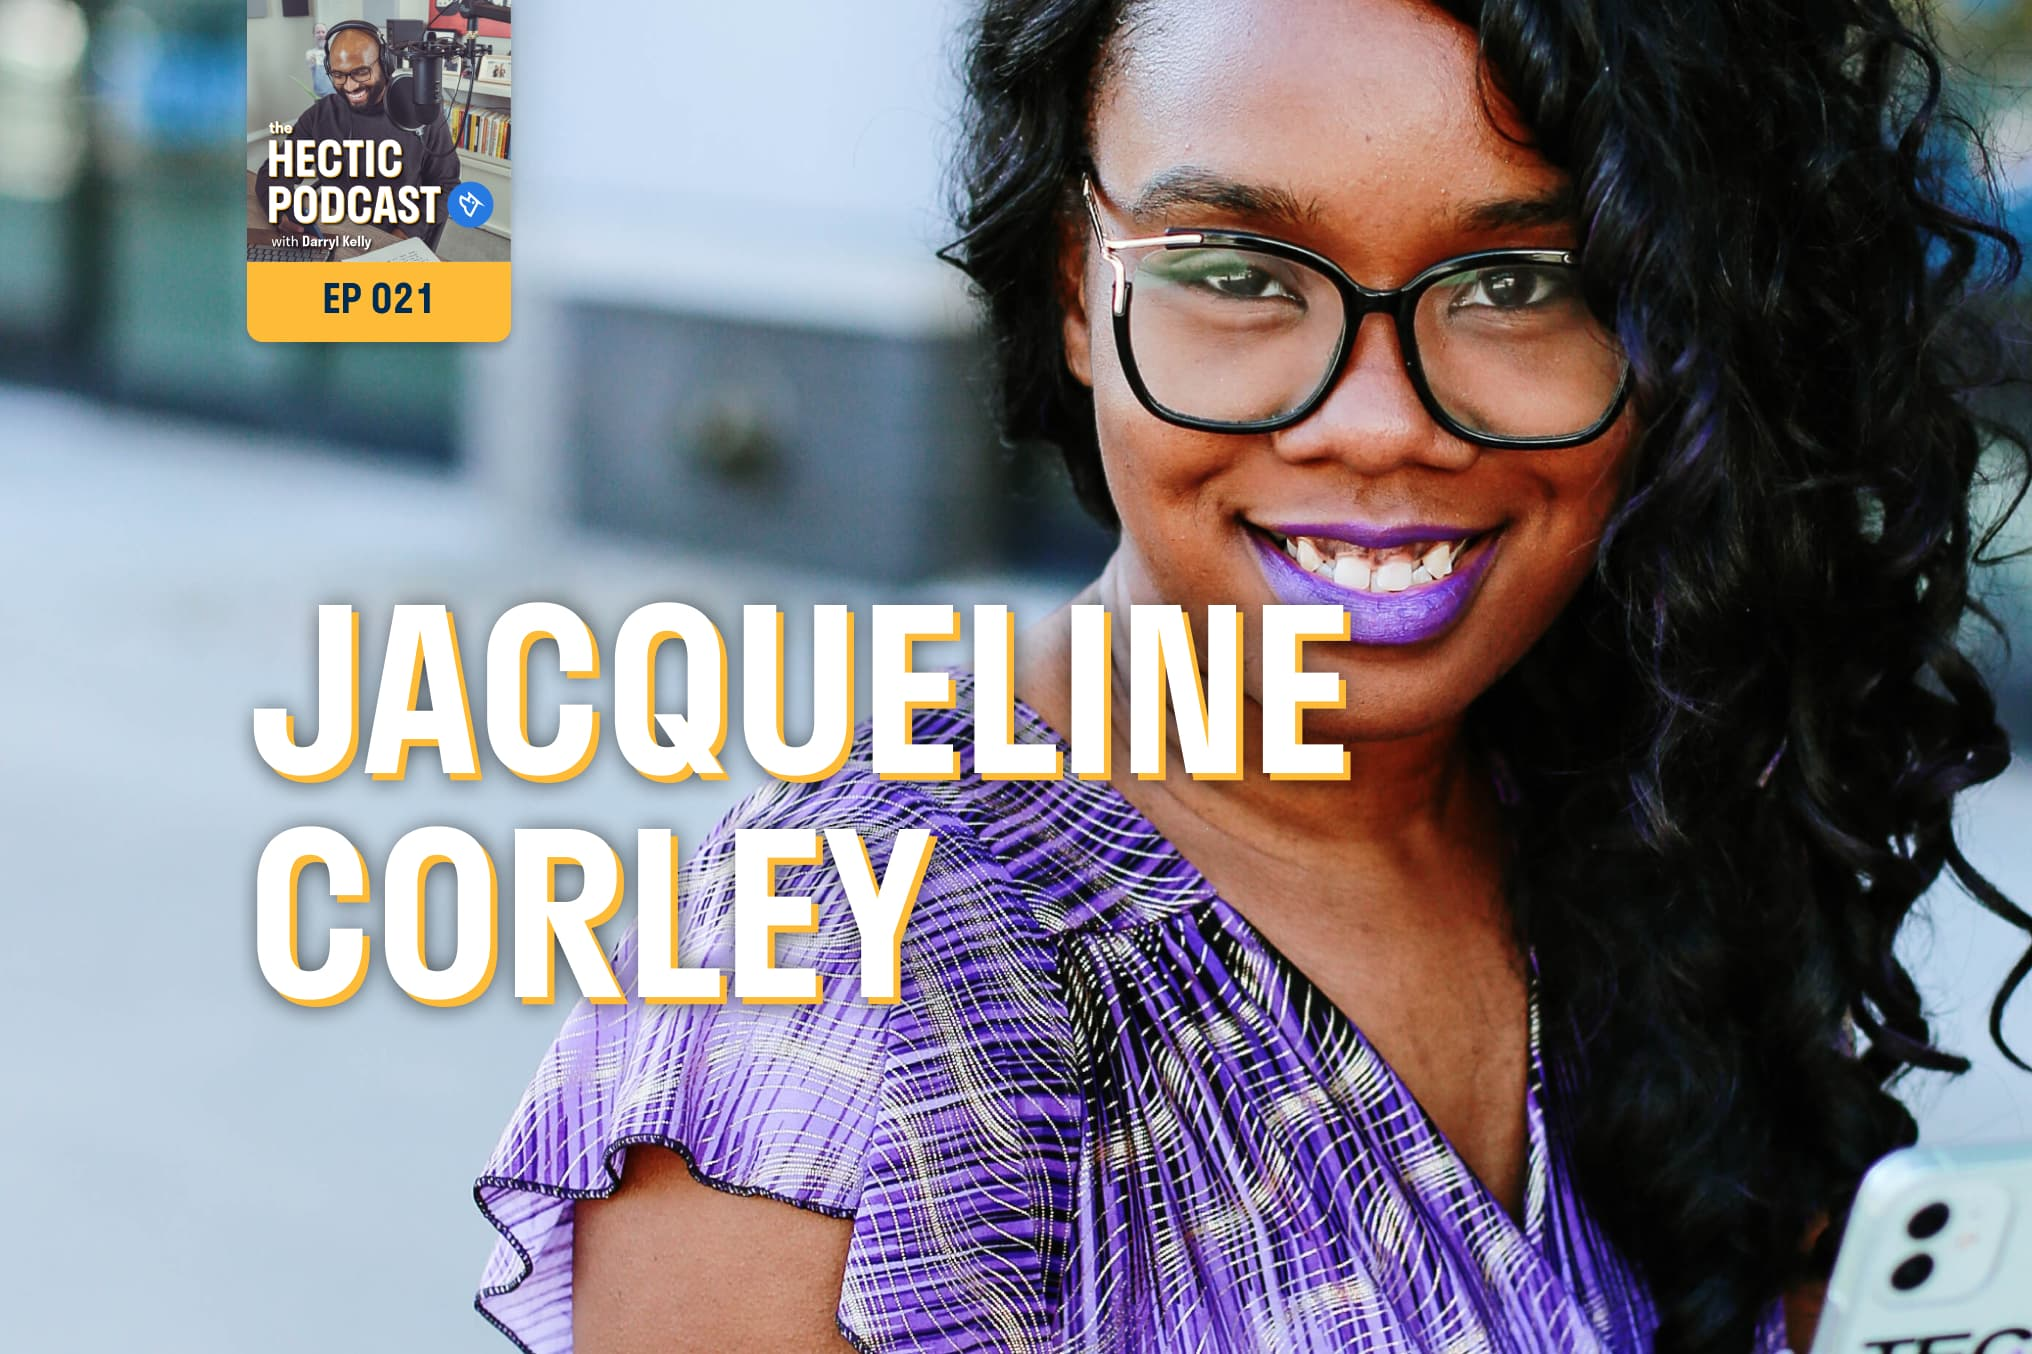 The Hectic Podcast with Jacqueline Corley: Vision